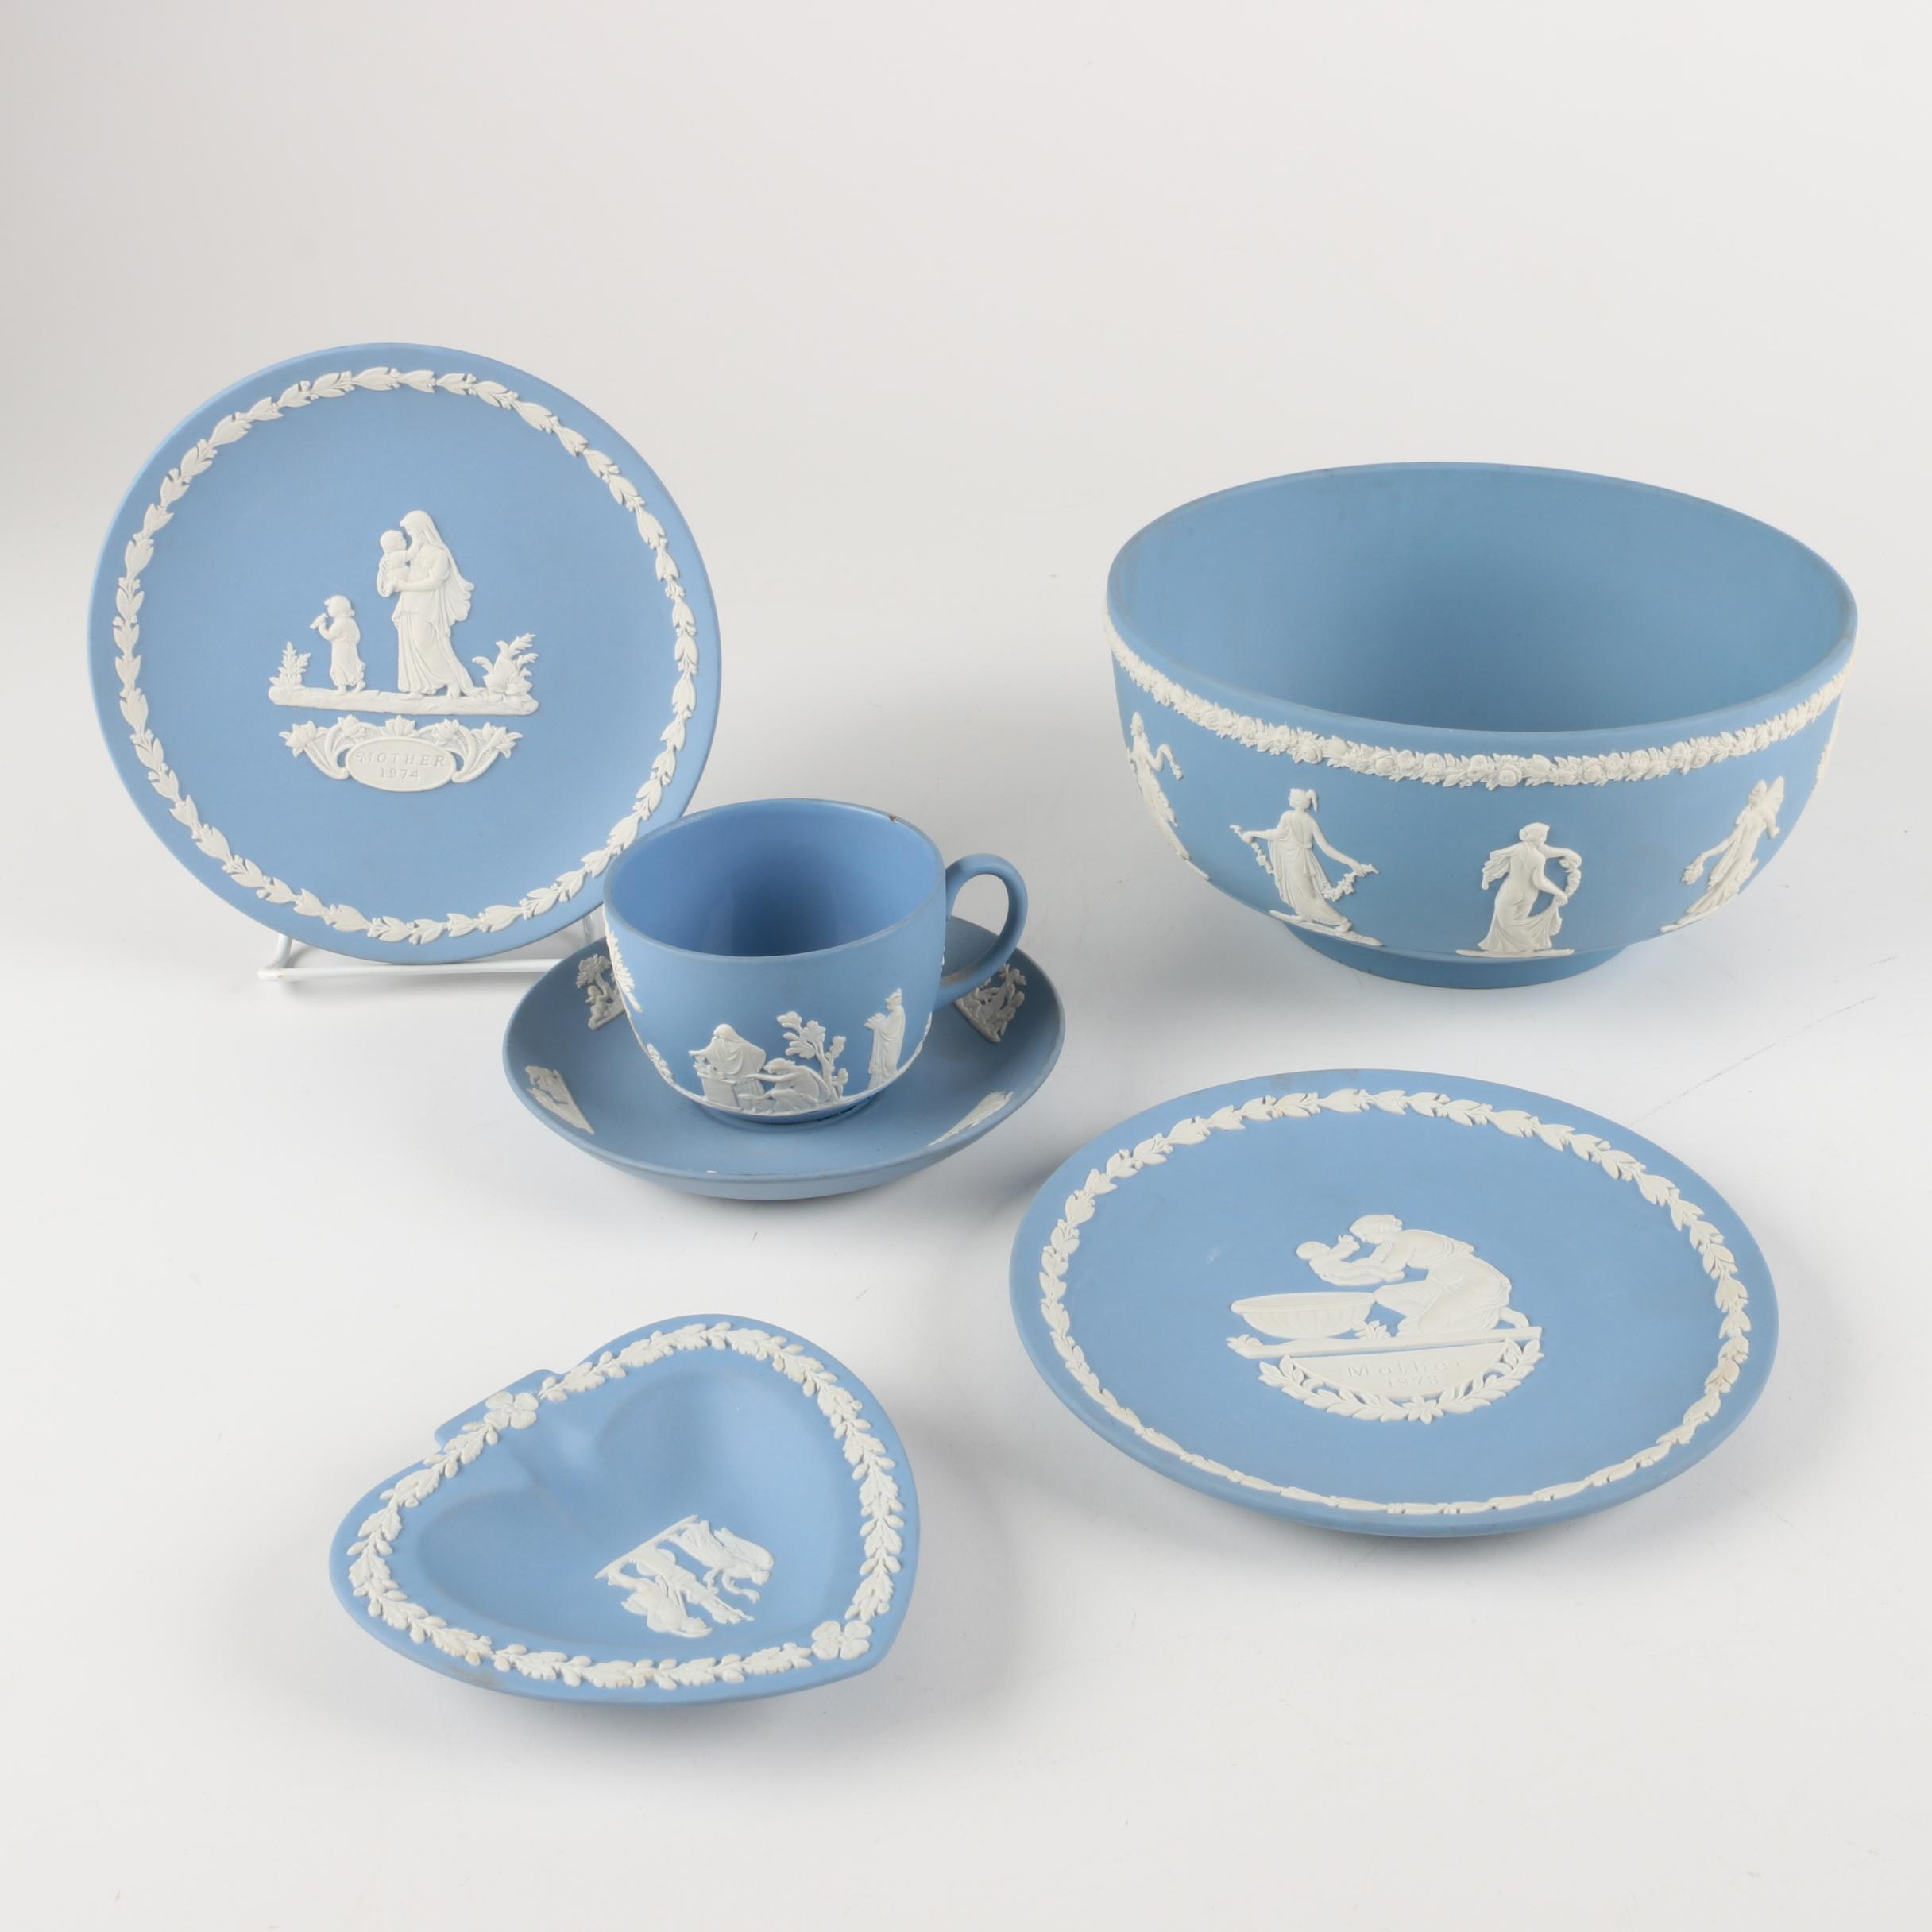 Wedgwood Cream-on-Lavender Jasperware